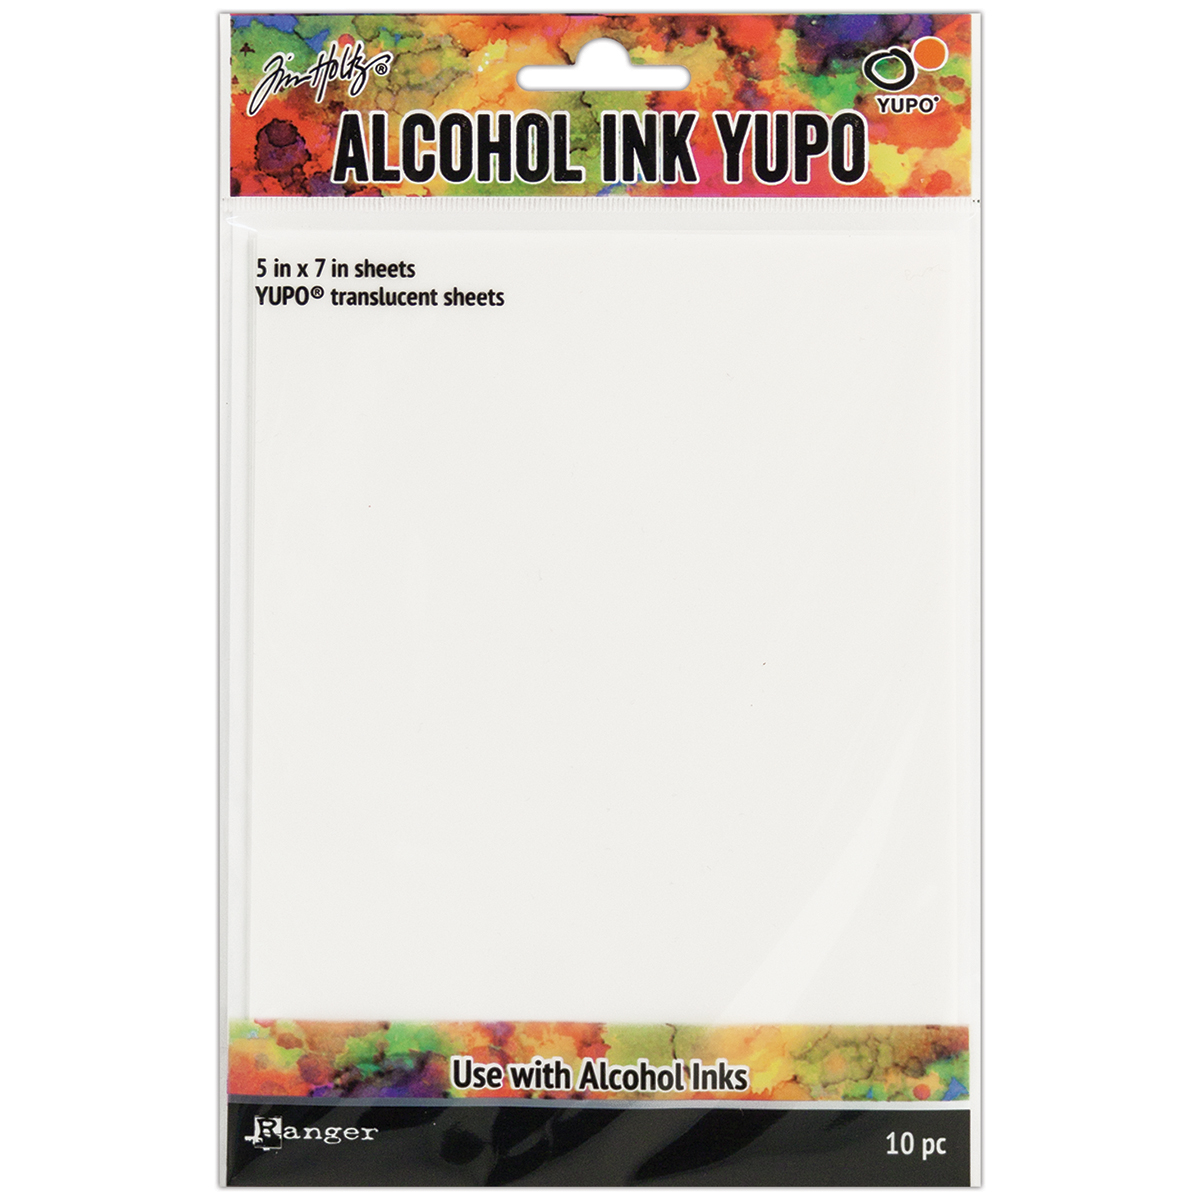 Tim Holtz Alcohol Ink Translucent Yupo Paper 10 Sheets-5X7